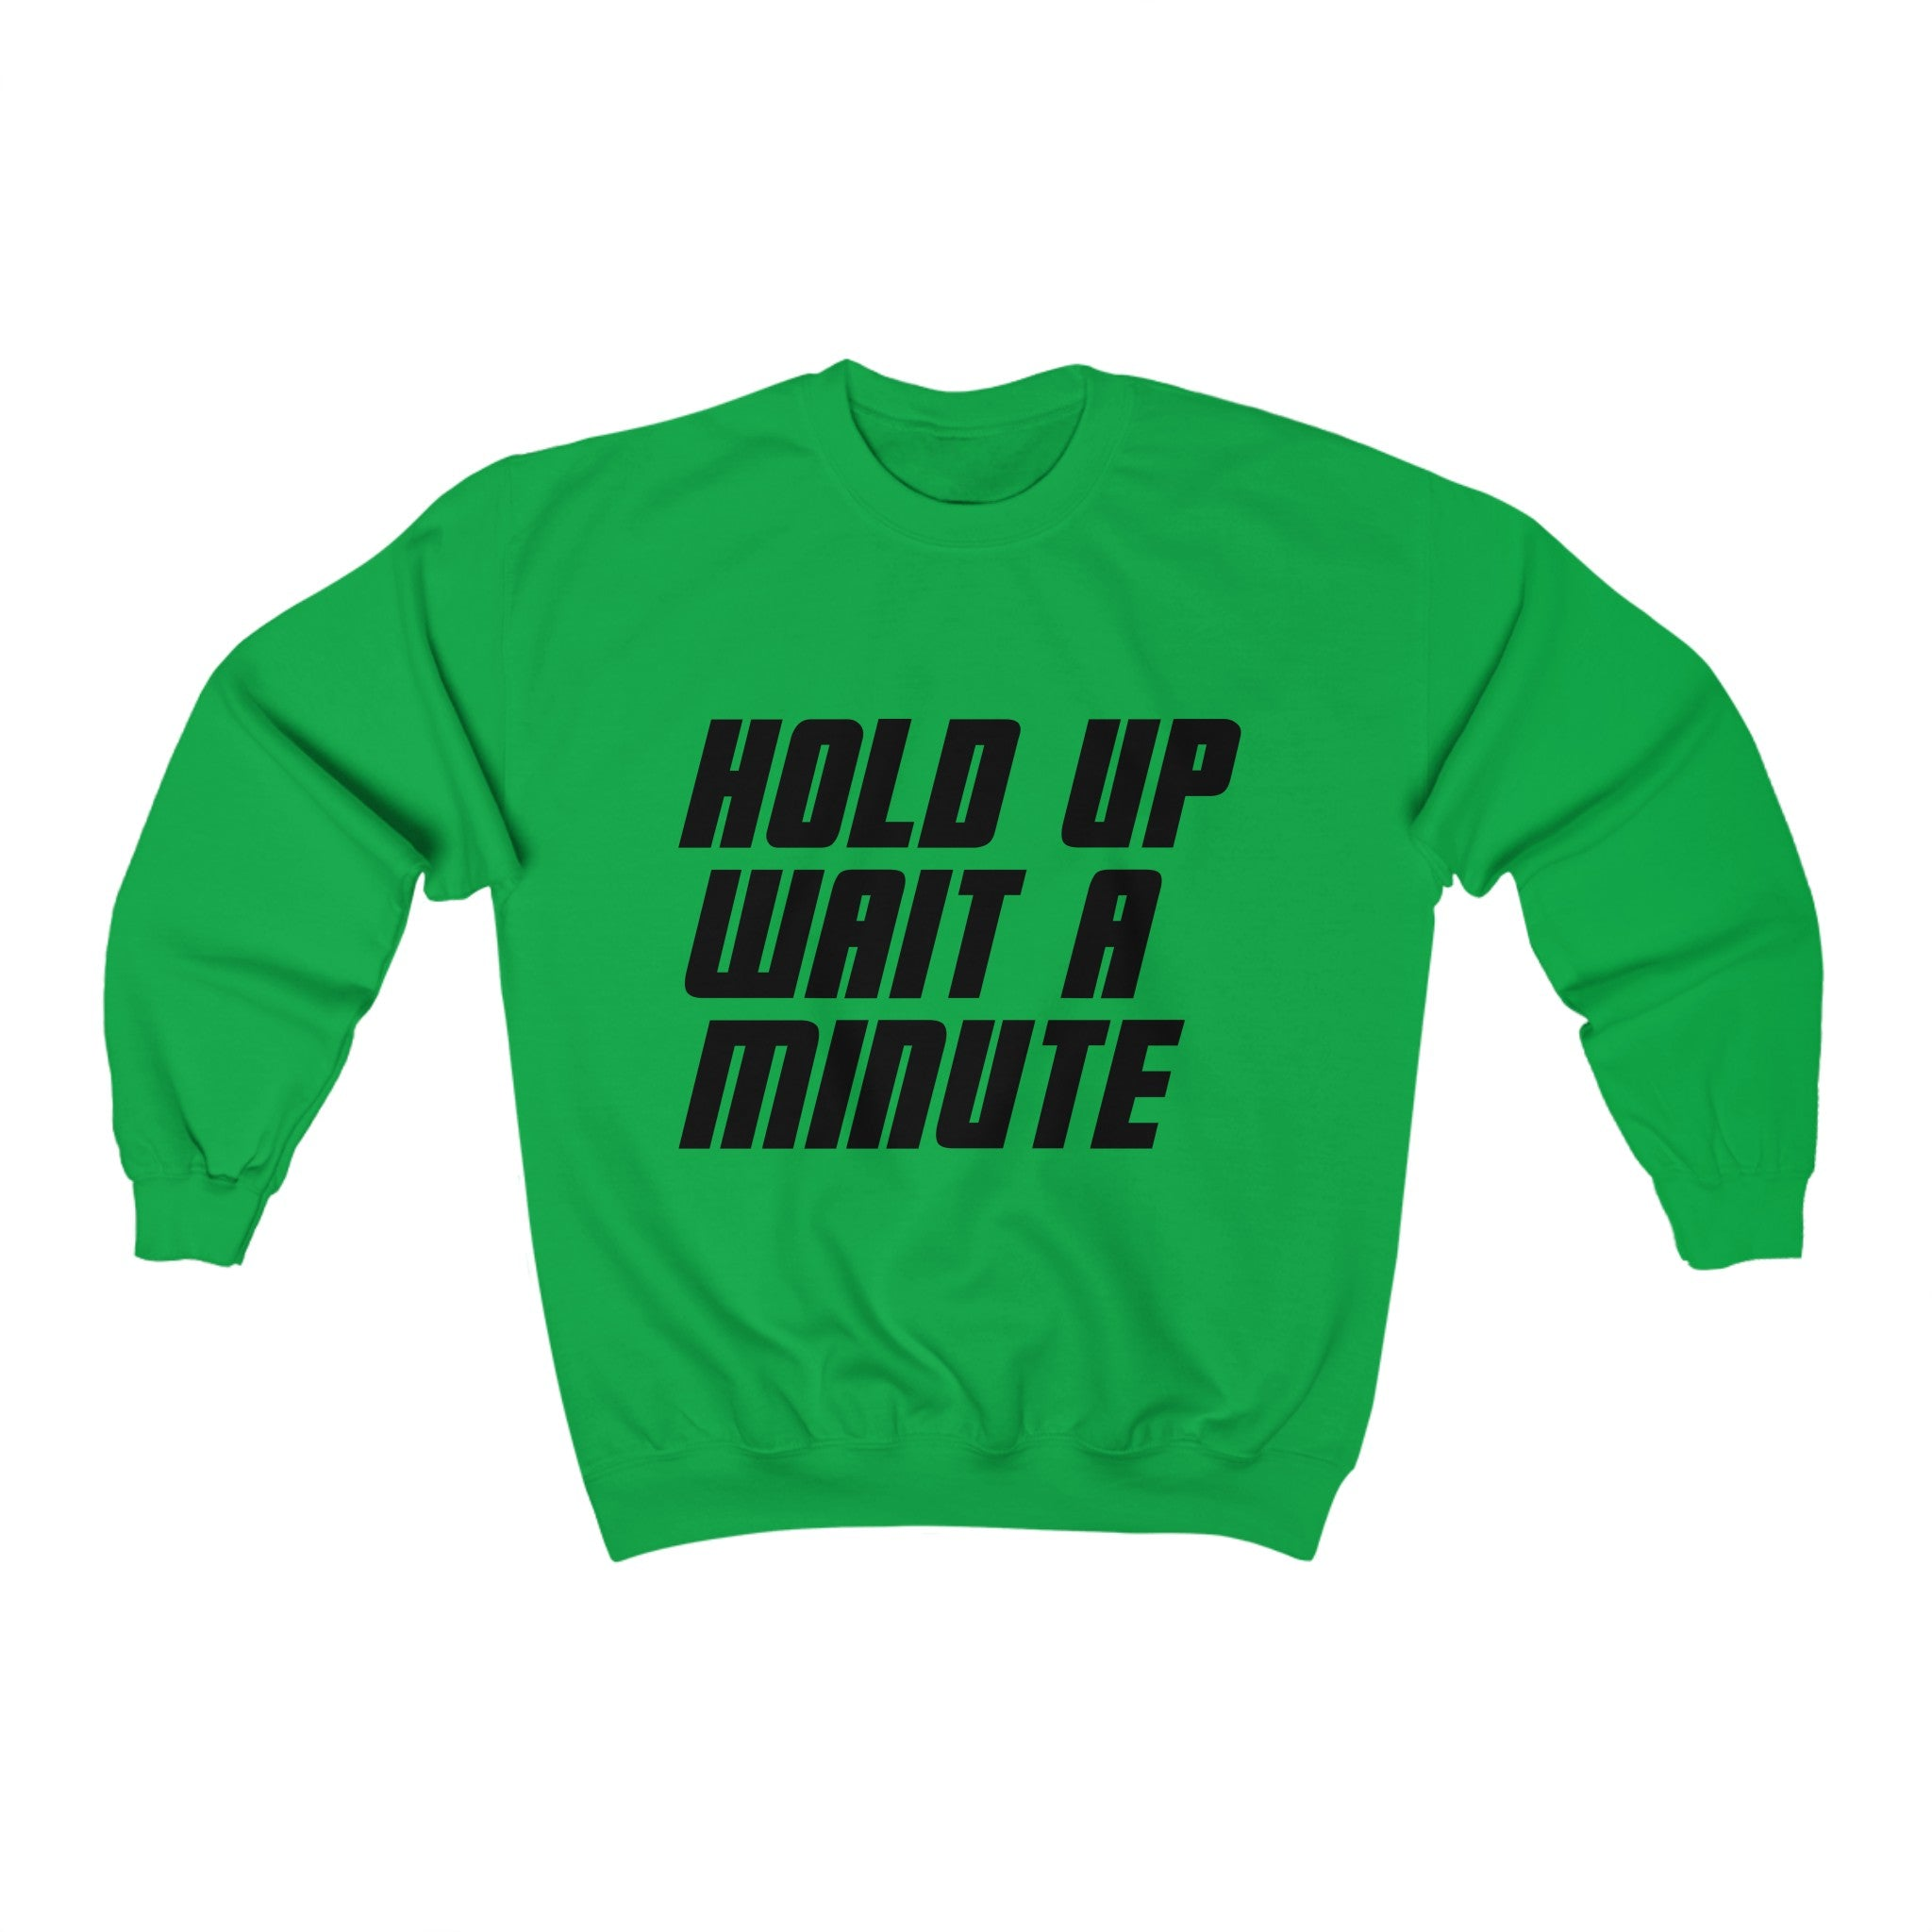 HOLD UP WAIT A MINUTE - LIMITED COLLECTION Green/Blk